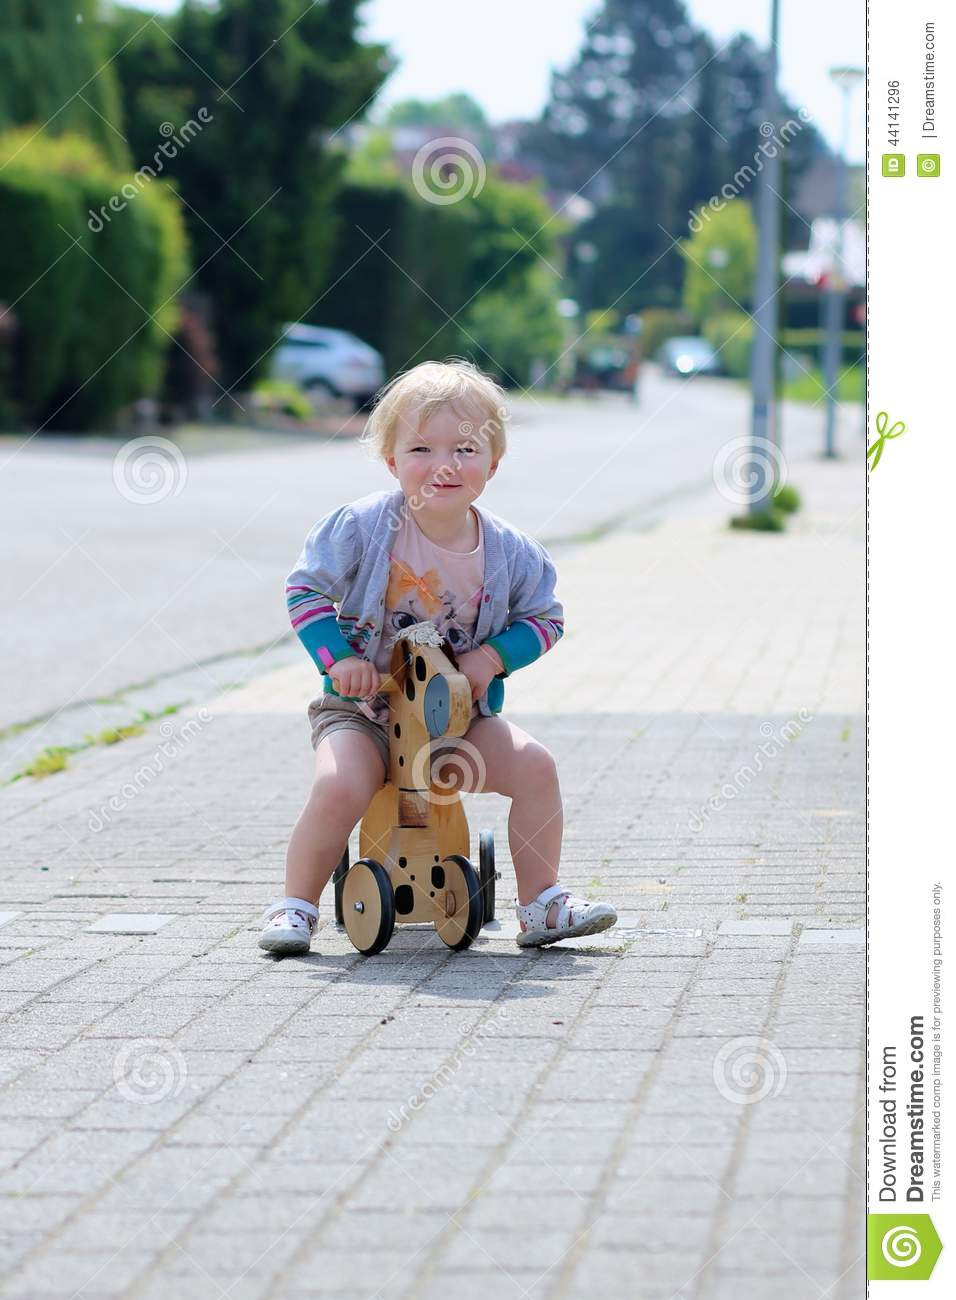 da26ab791ef Happy little kid, cute blonde toddler girl playing outdoors on the street  riding her push bike, wooden horse with three wheels, on a sunny summer day